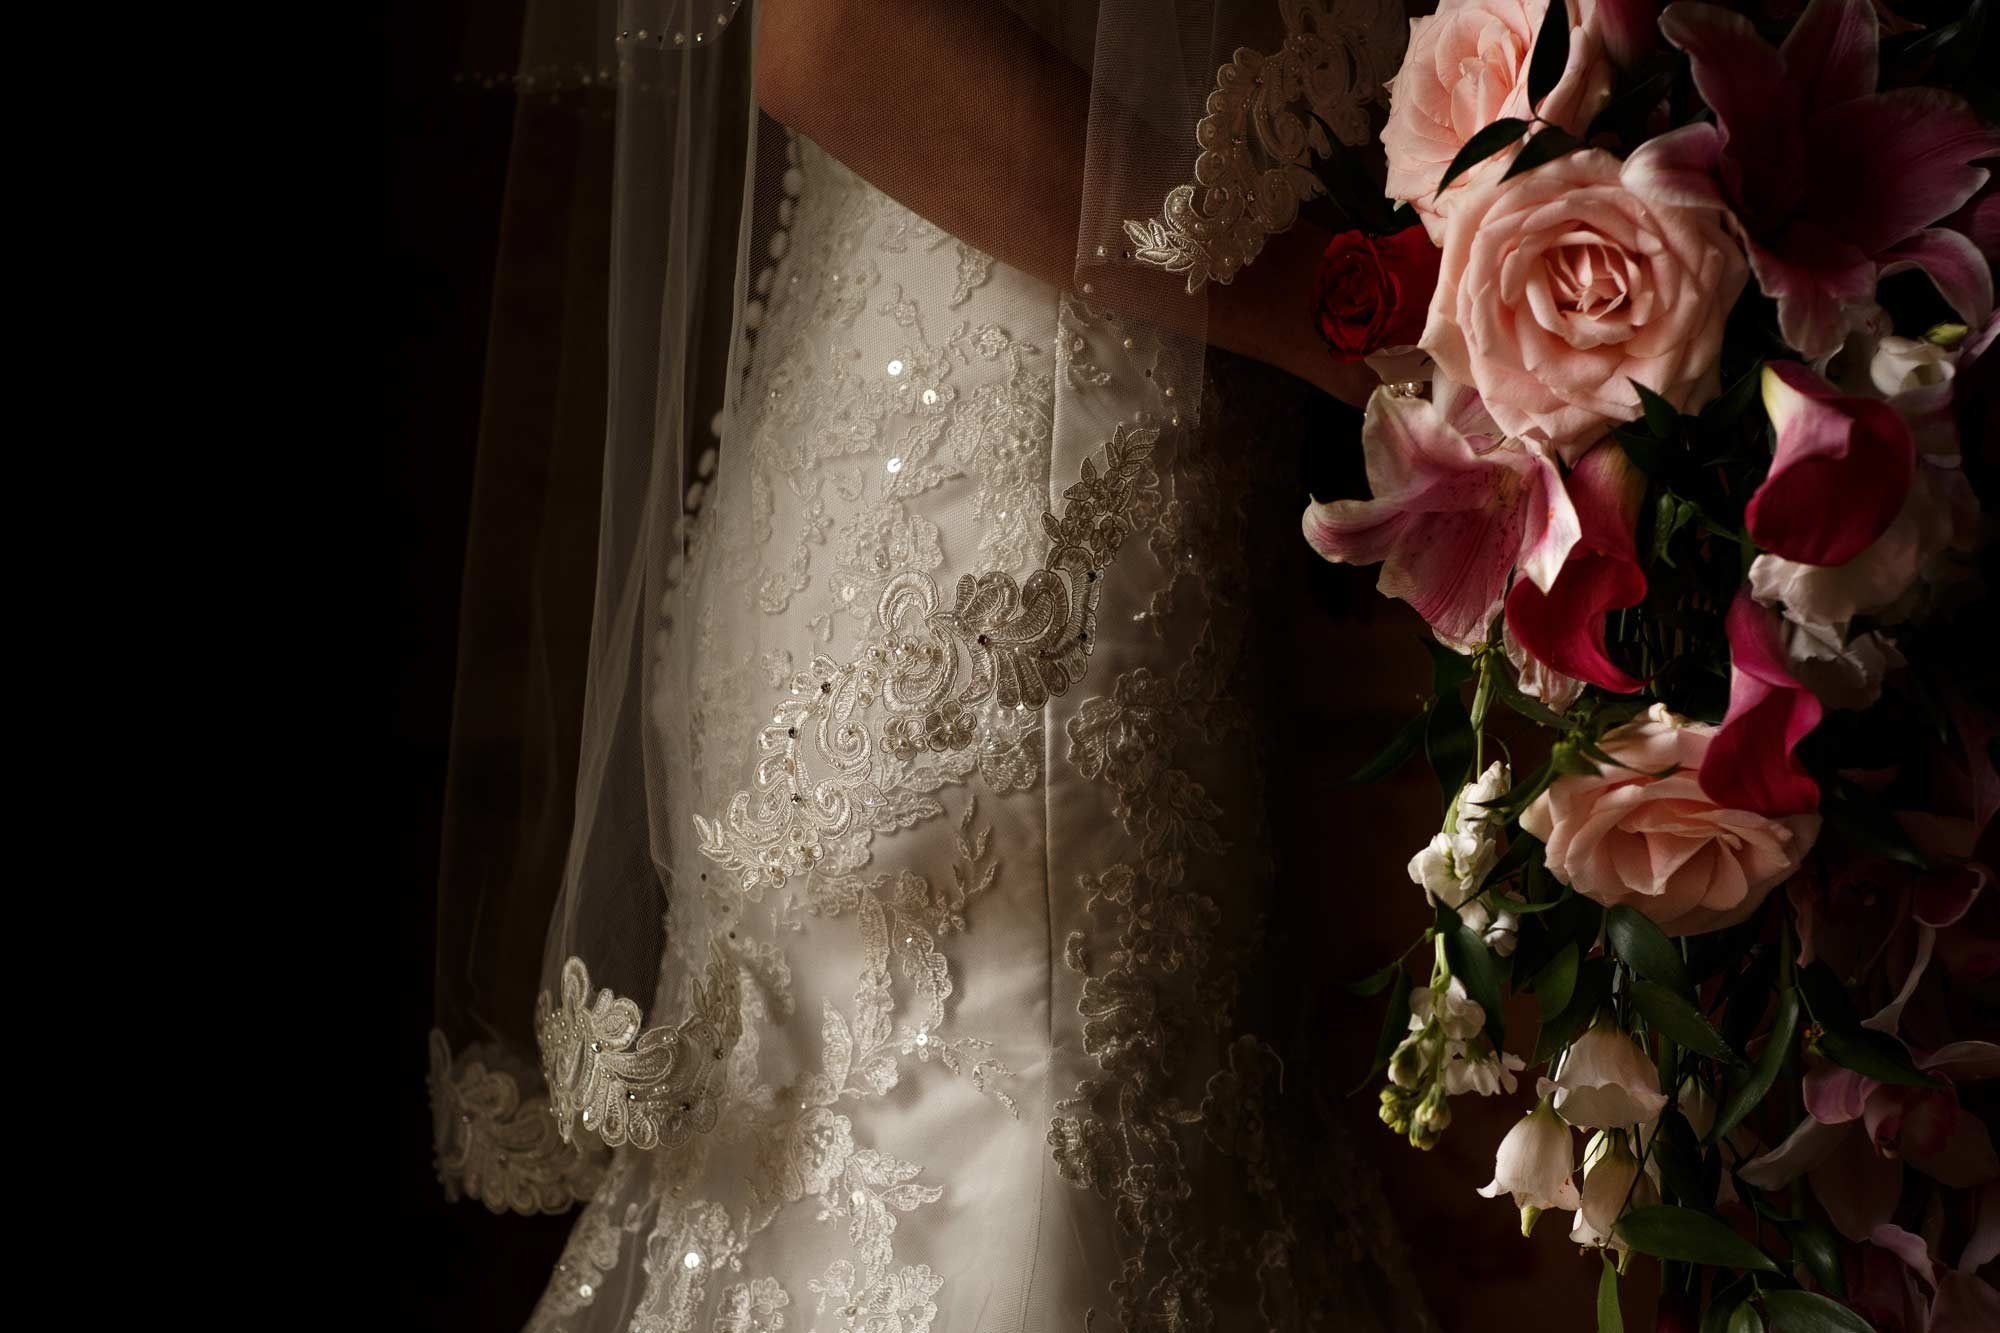 fine art portrait of the brides veil and flowers as she is about to walk into her ceremony